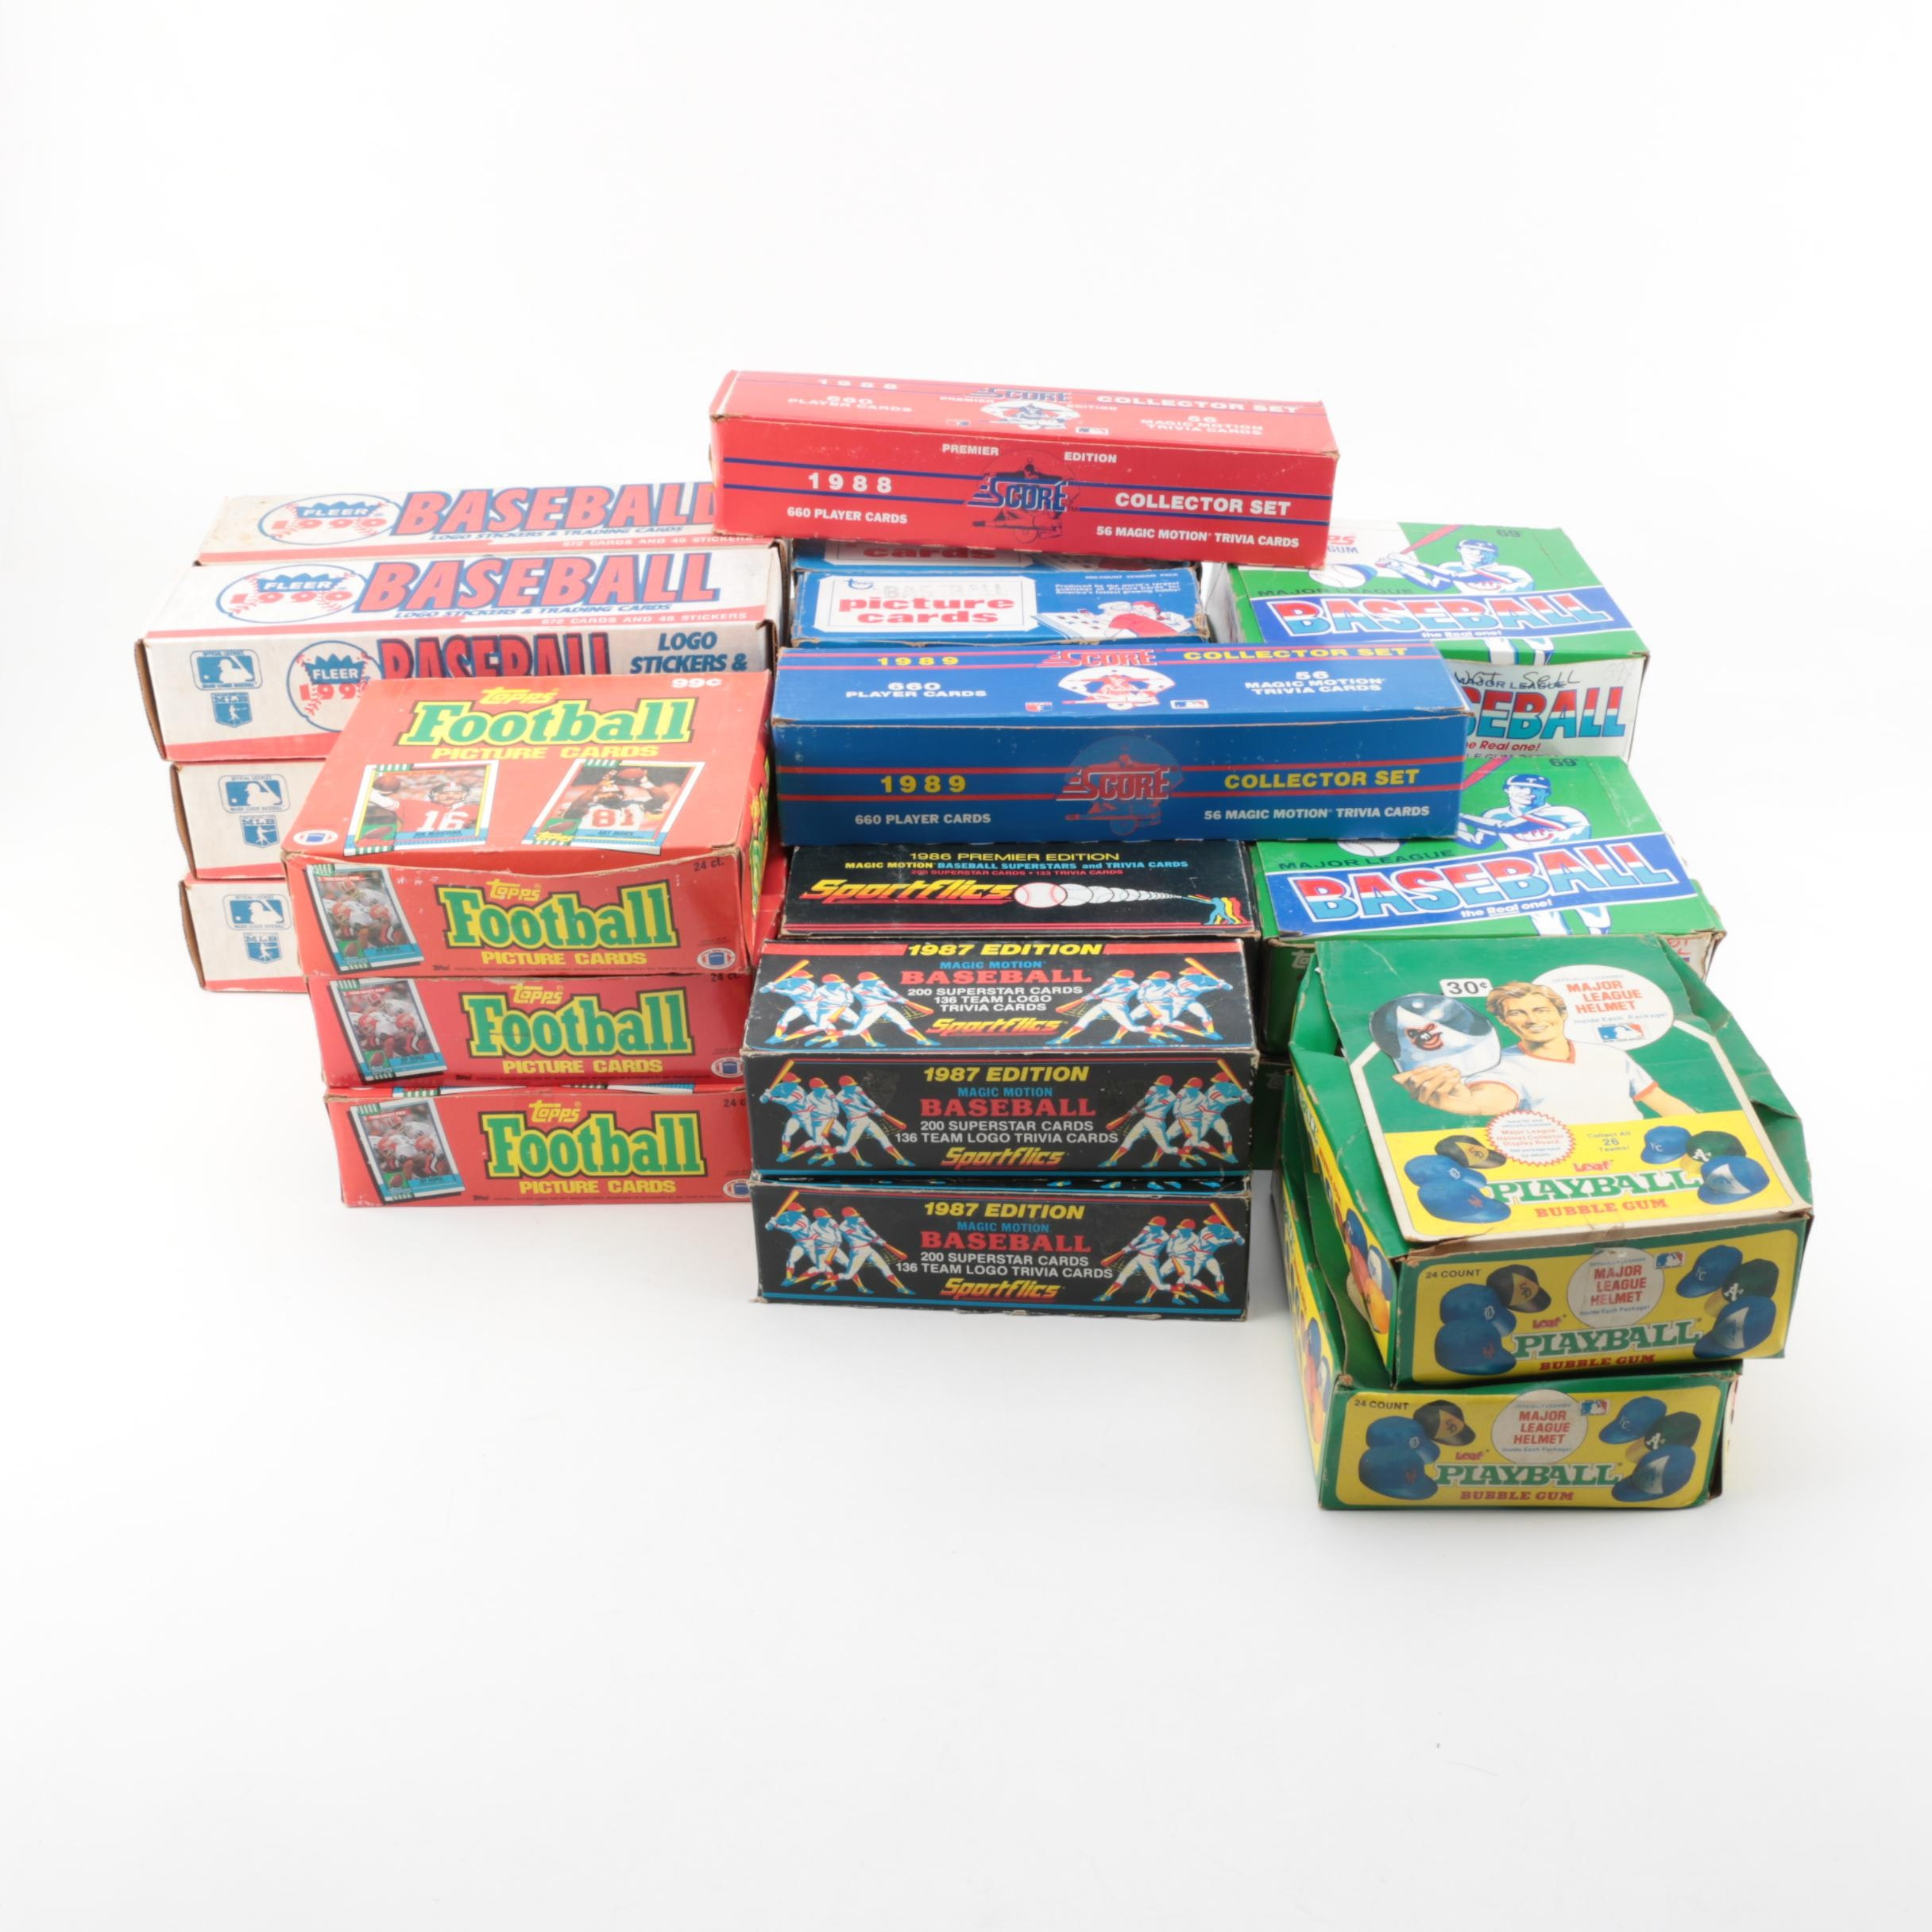 1980s-1990s Sport Card Sets Including Topps and Fleer